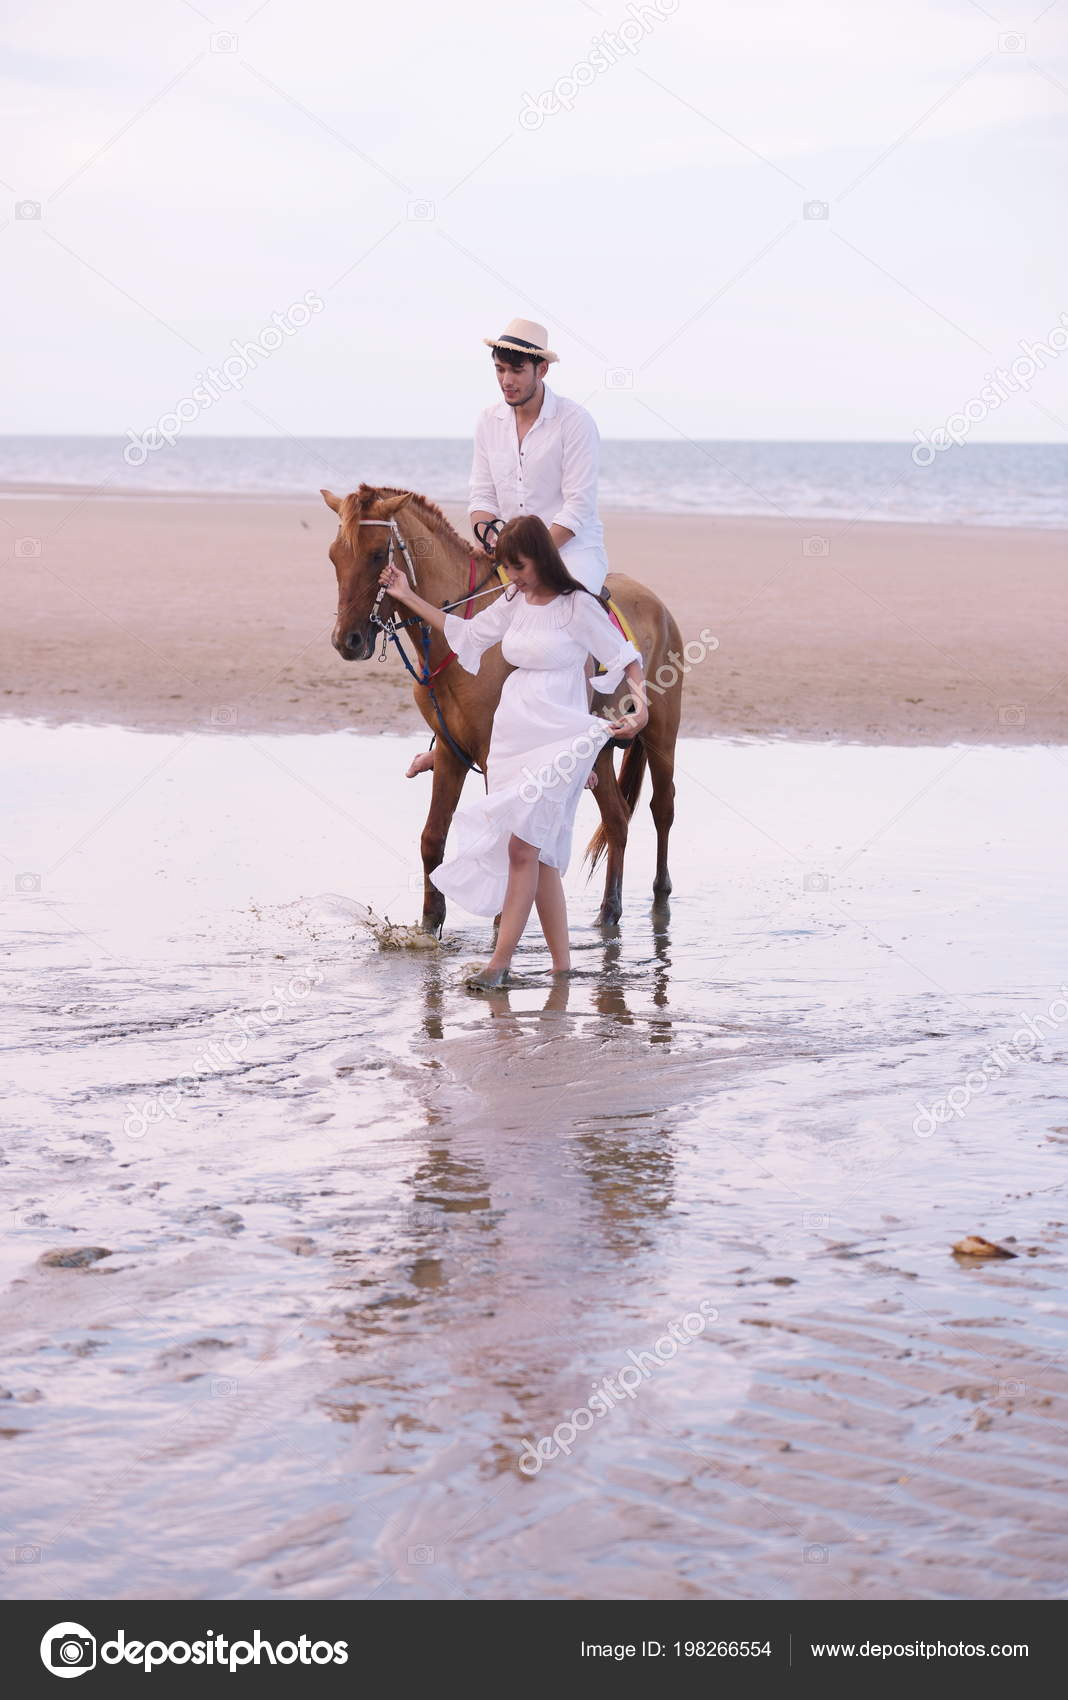 Romantic Couple Horse Riding Beach Afternoon Sweet Holiday Stock Photo C Tharathiponsri Gmail Com 198266554